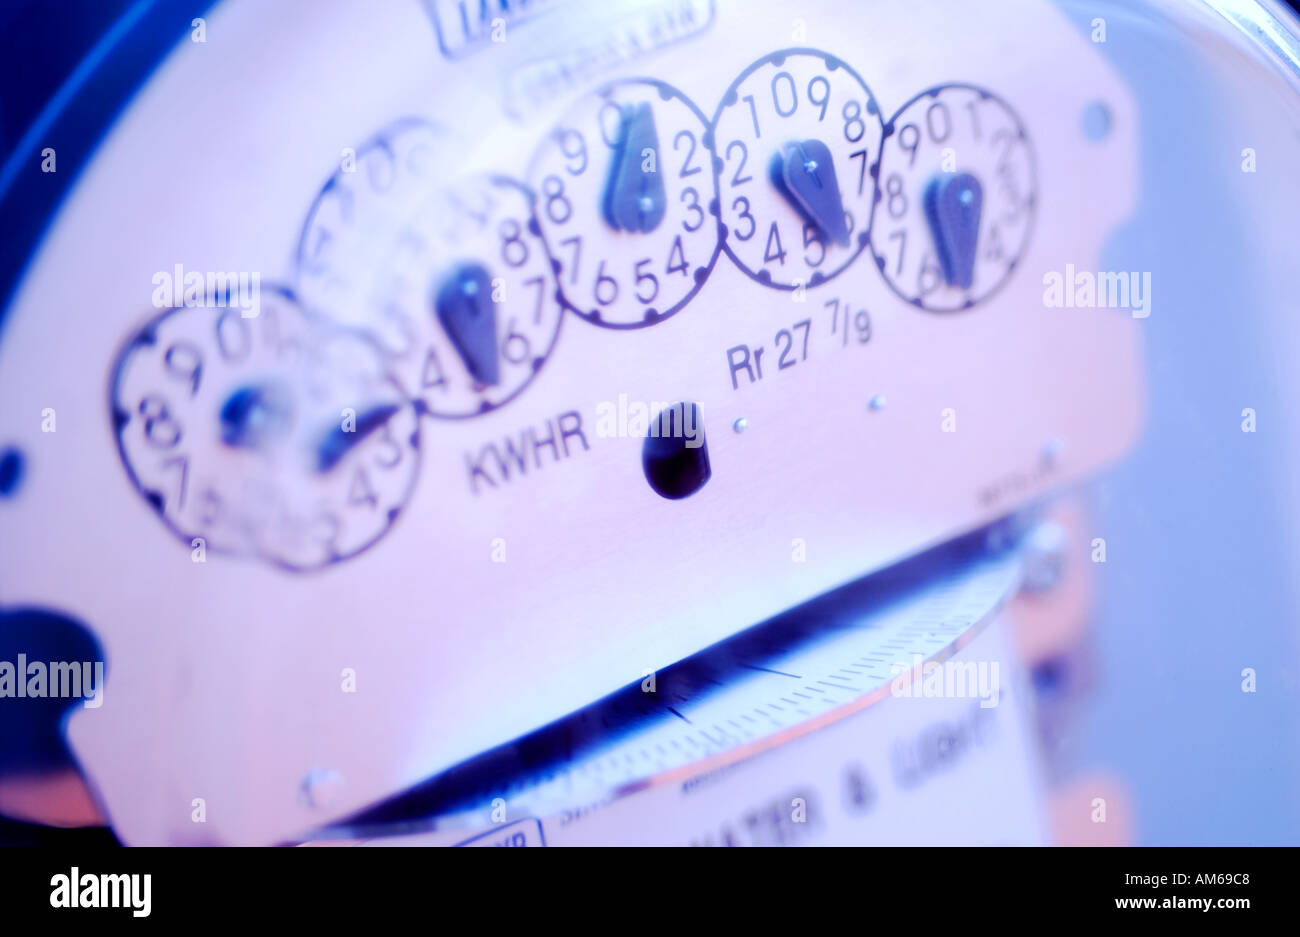 Electricity power meter - Stock Image